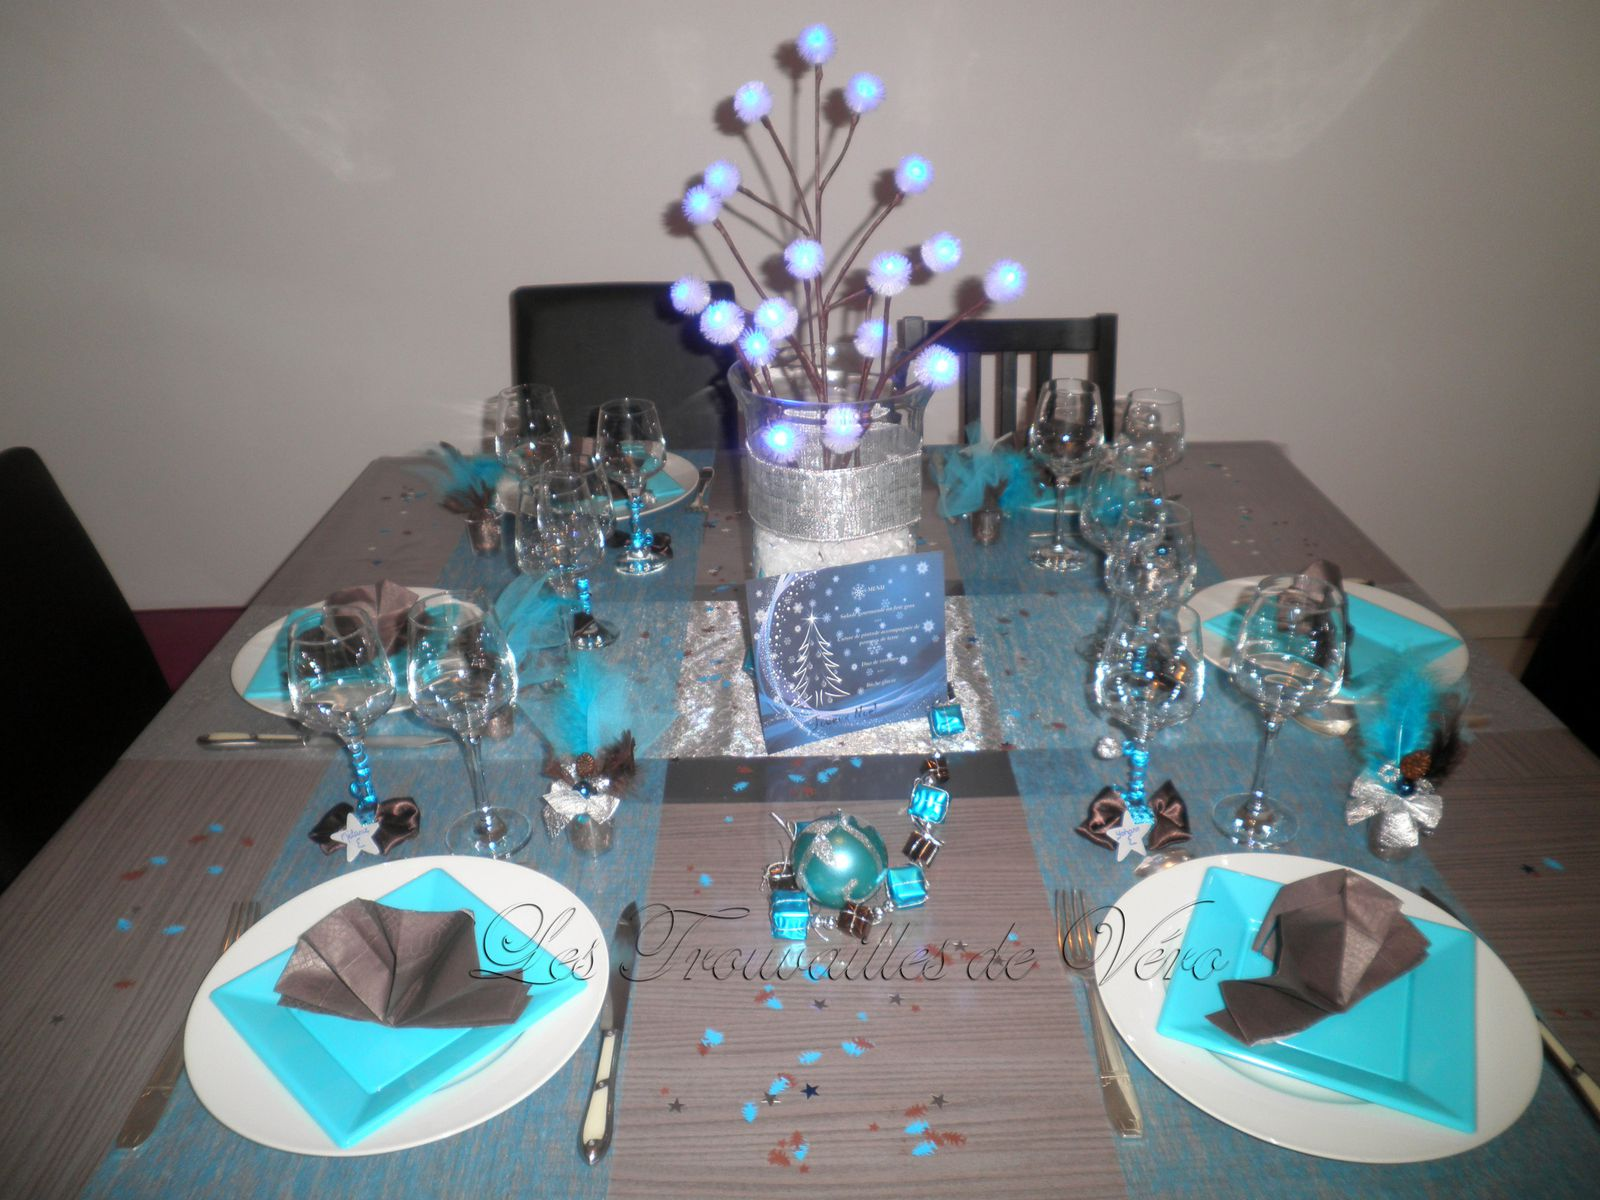 Decoration De Table Bleu Of D Co Table De F Te Marron Et Bleu Le Blog De Les